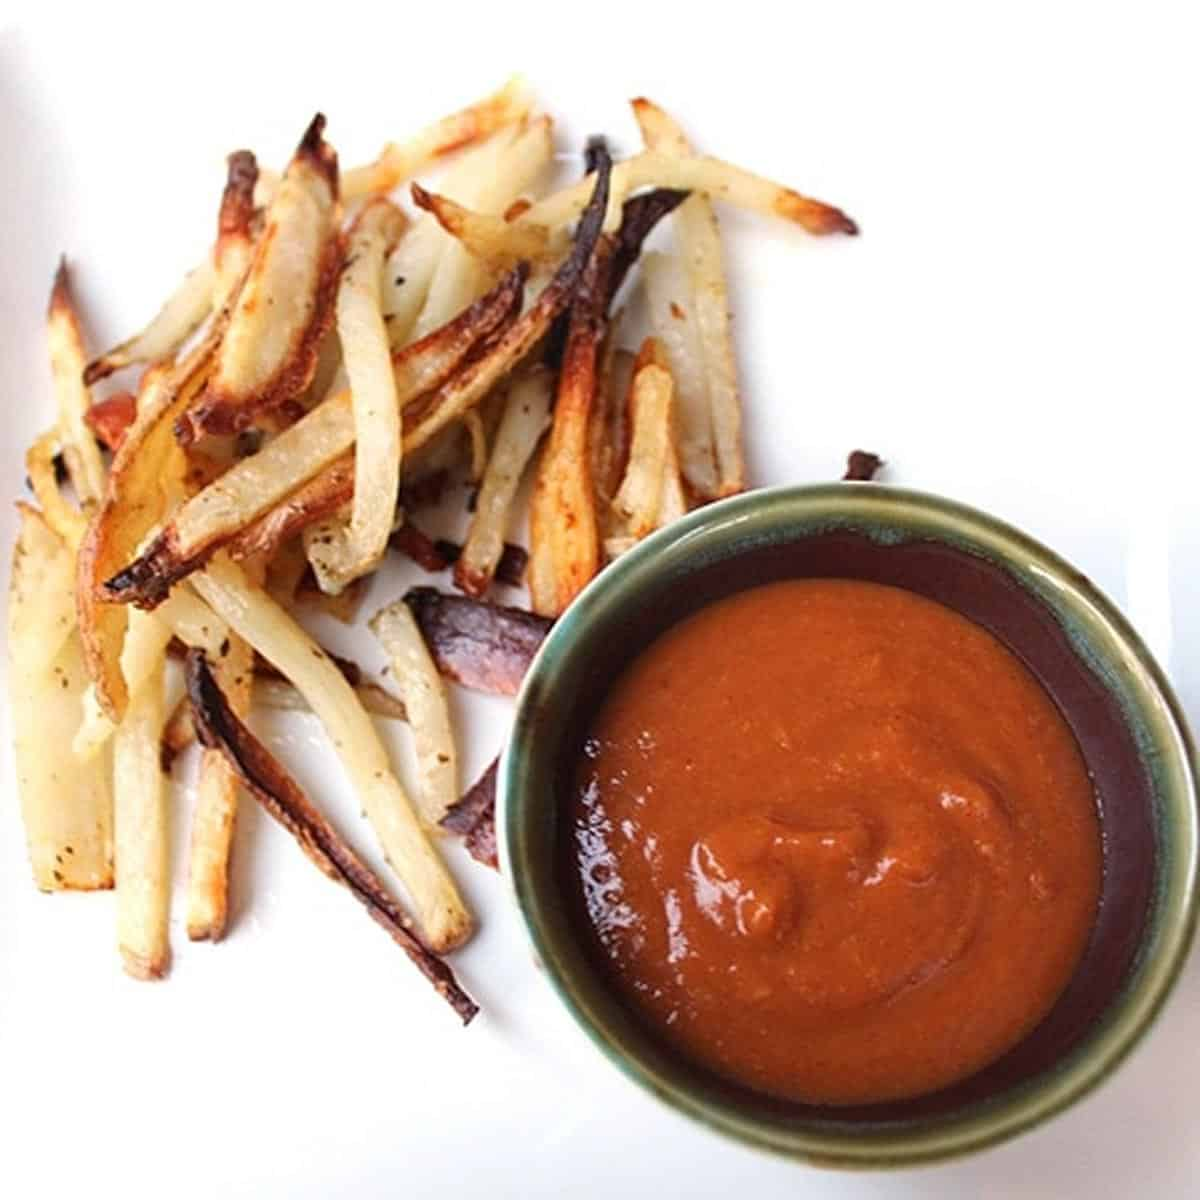 Spicy Peanut Butter Dipping Sauce with french fries.